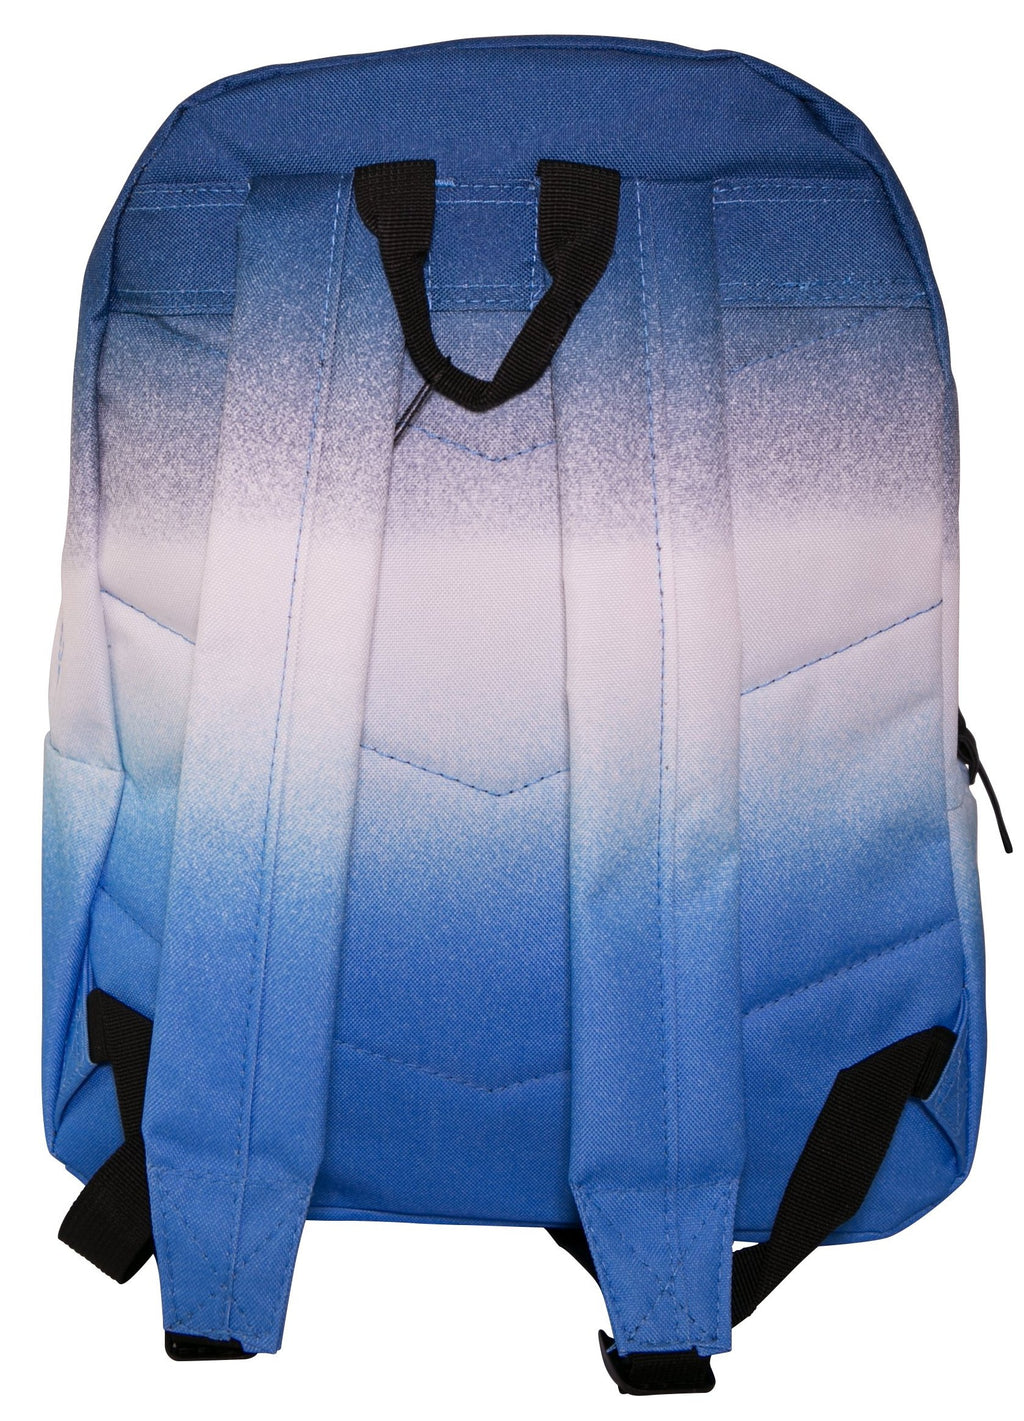 HYPE DOUBLE FADE BACKPACK RUCKSACK BAG - BLUE/WHITE/NAVY